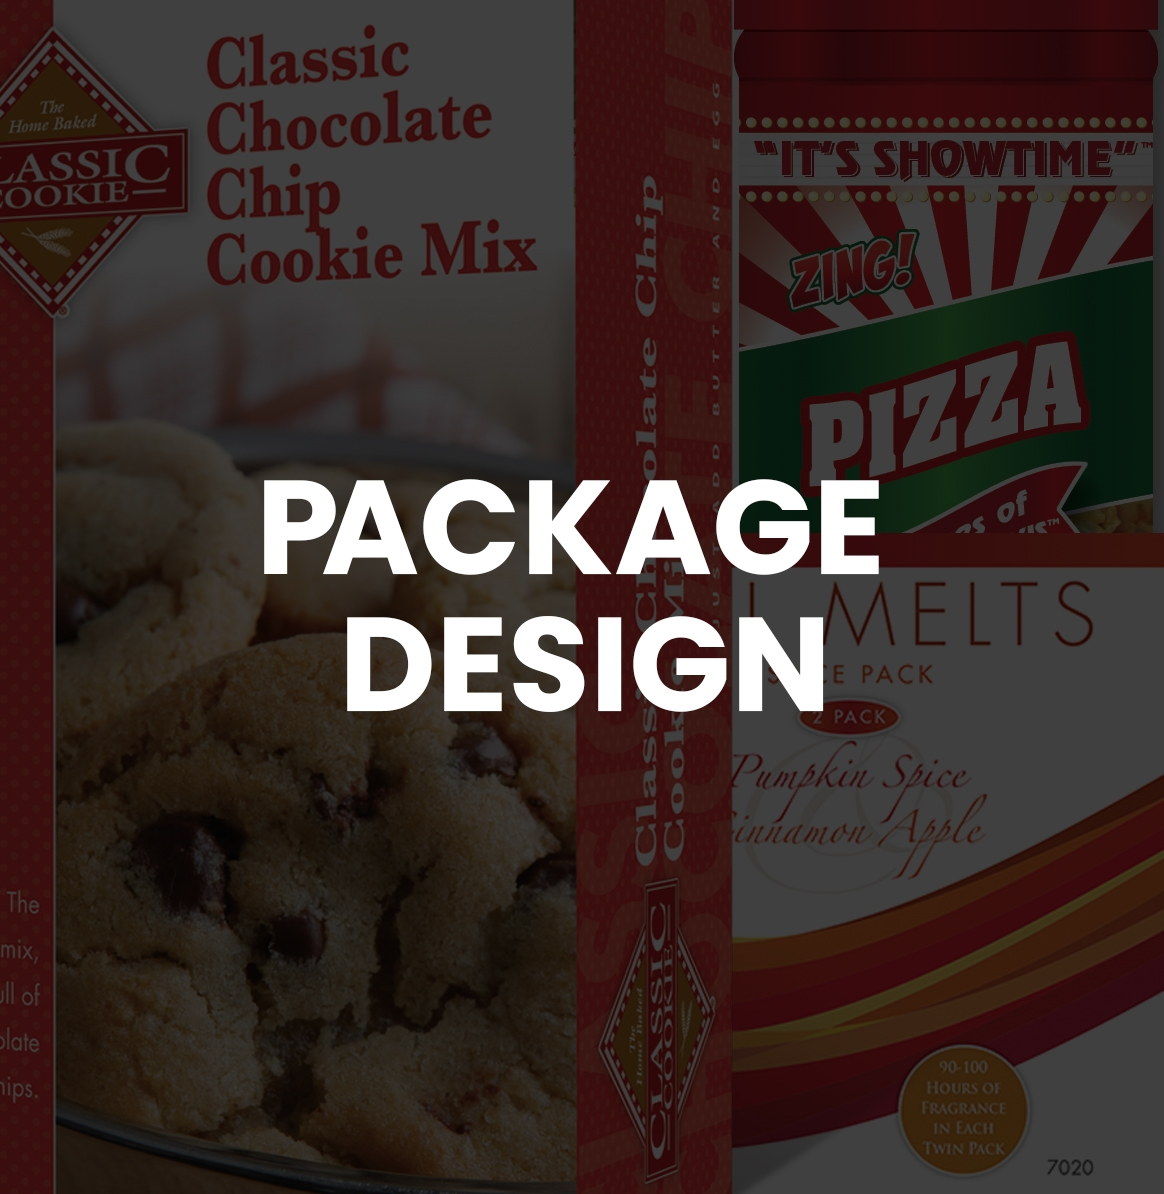 CategoryMasters_PACKAGE